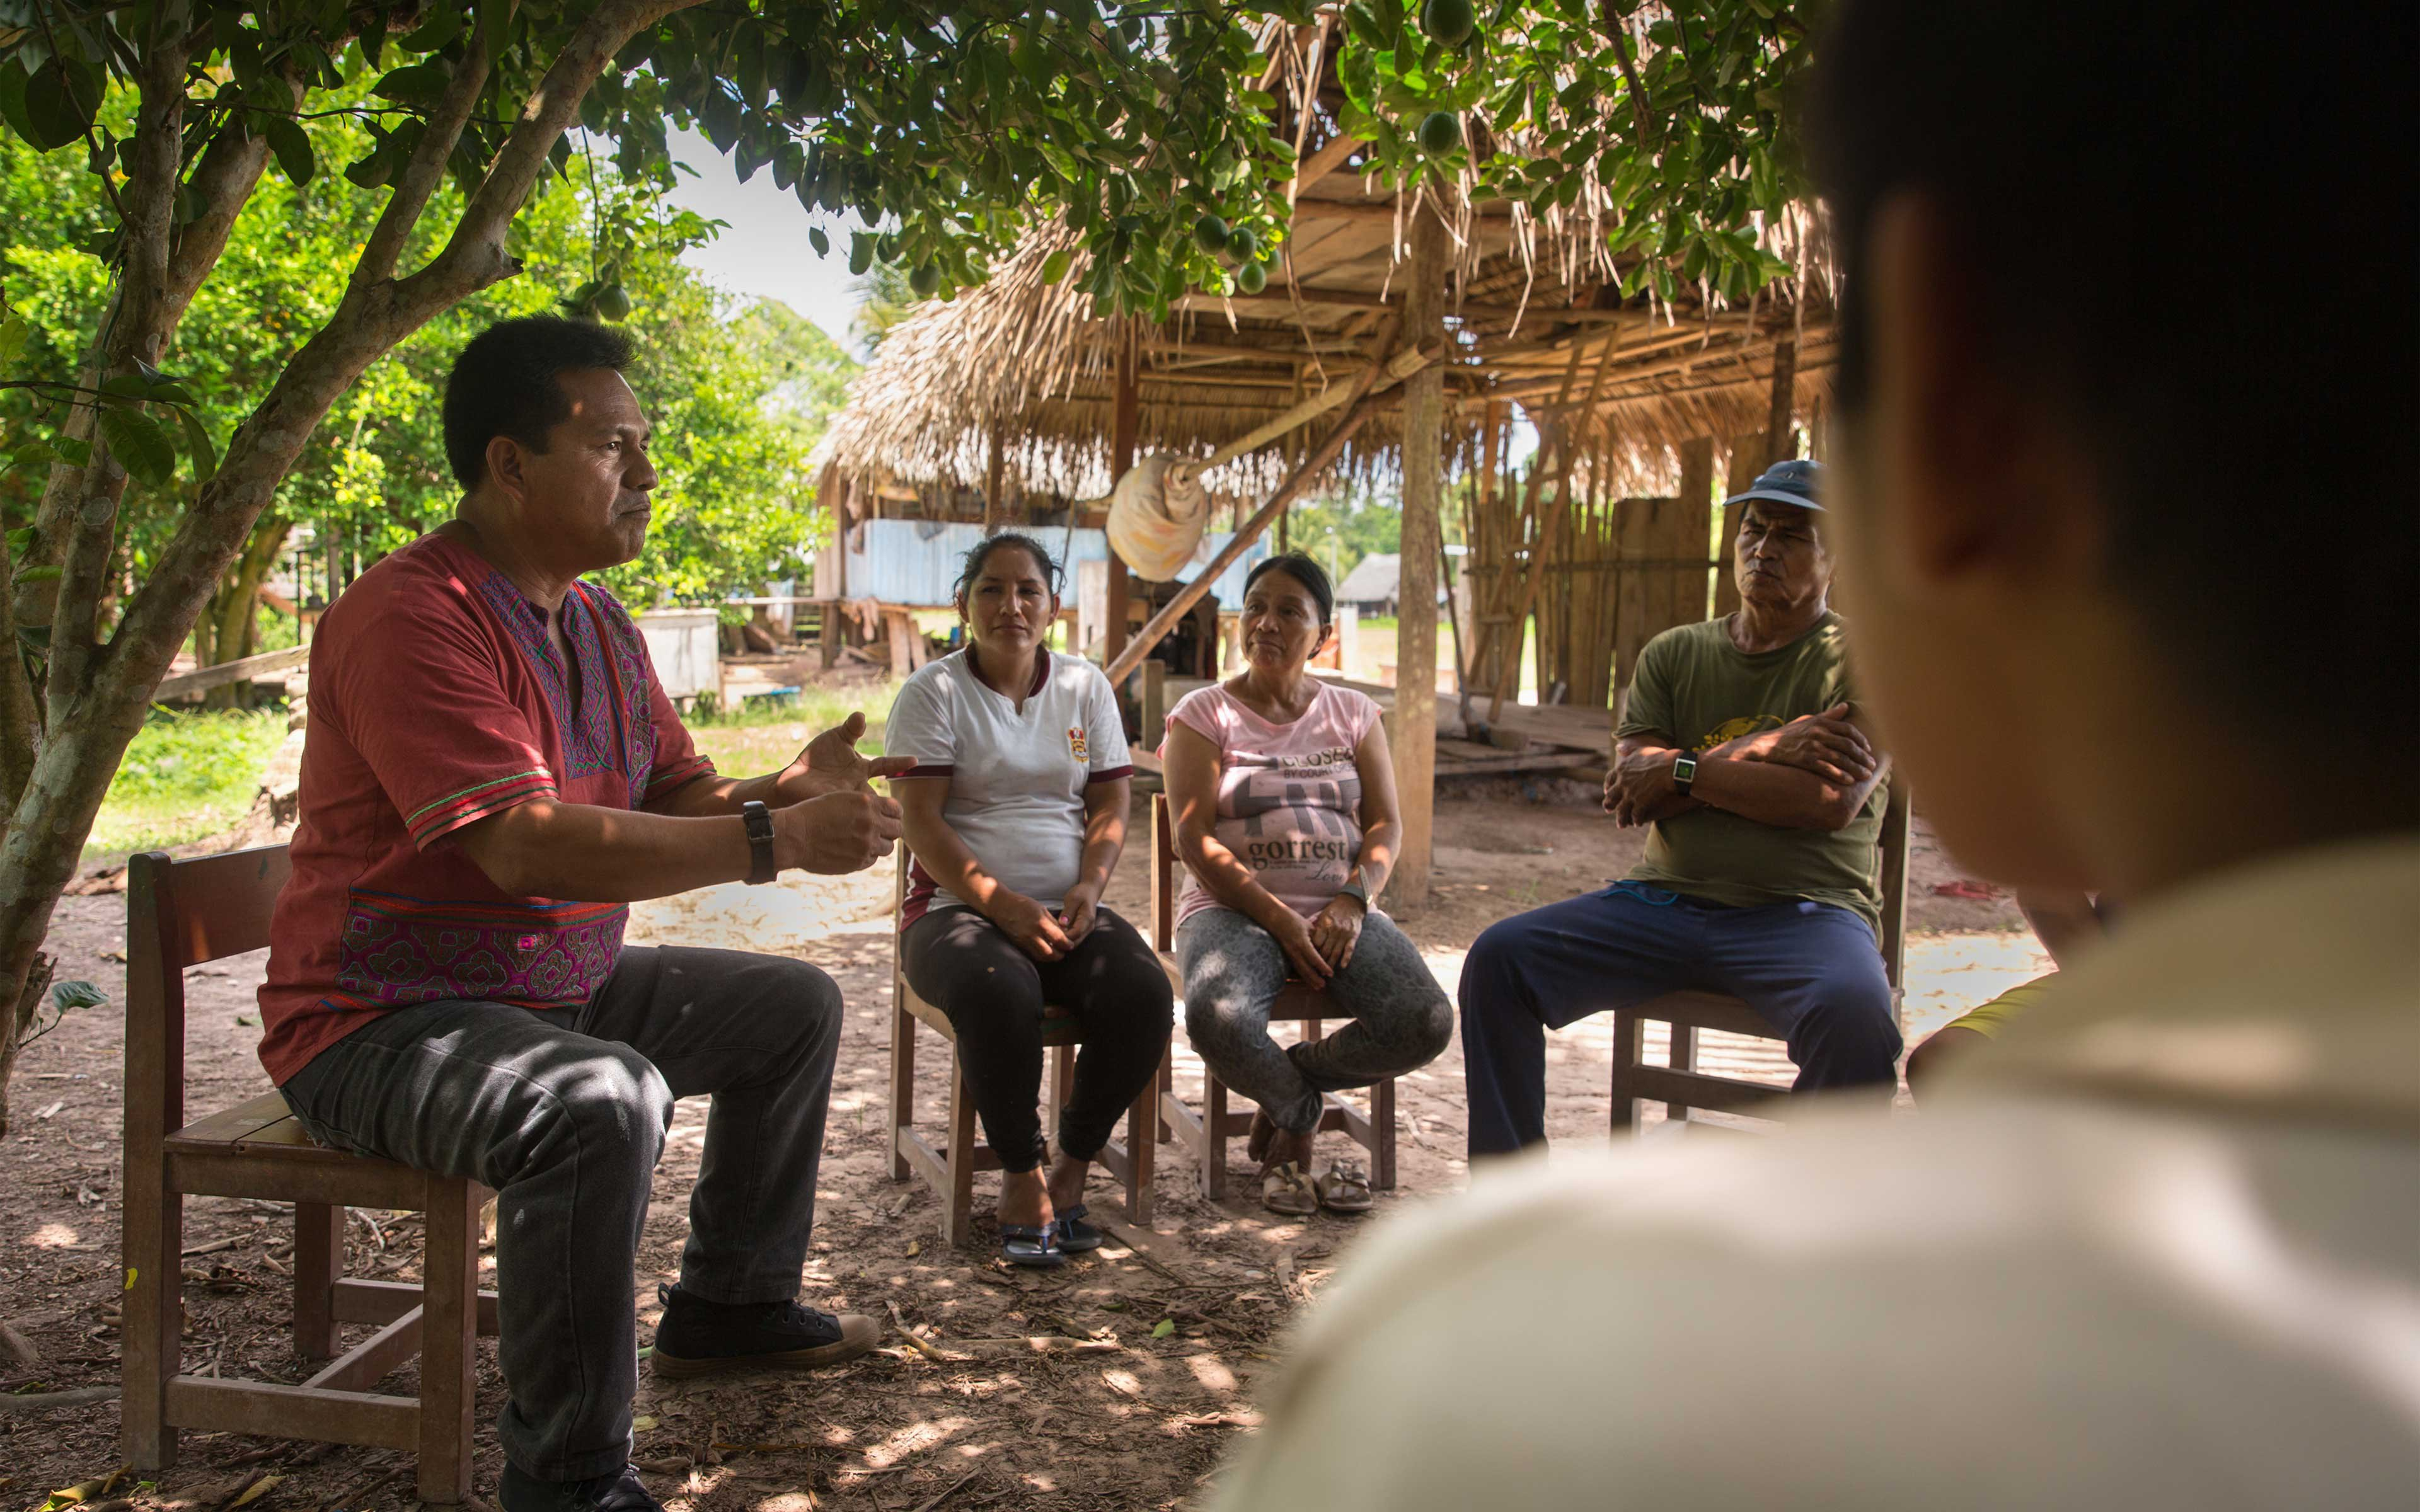 """Robert Guimaraes, leader of the Federation of Native Communities of Ucayalli (known as FECONAU), at a community meeting in Santa Clara de Uchunya. He says since the Ocho Sur plantation began clearing the forest four years ago, """"we've received death threats, and all sorts of accusations against me and others in the media."""""""